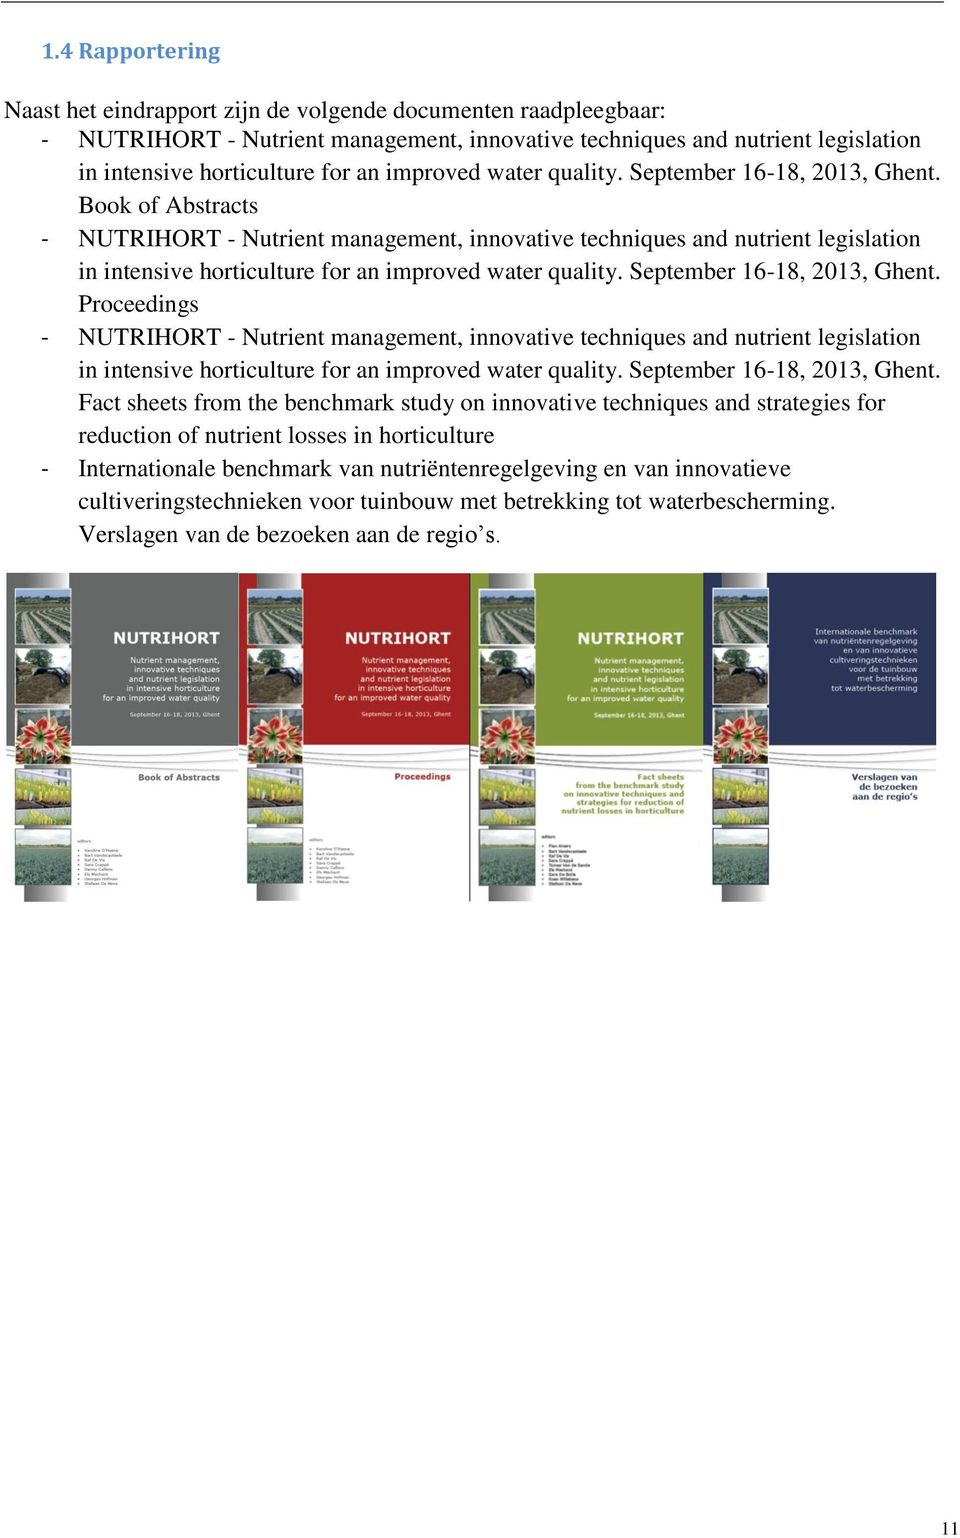 Book of Abstracts - NUTRIHORT - Nutrient management, innovative techniques and nutrient legislation in intensive horticulture for an  Proceedings - NUTRIHORT - Nutrient management, innovative